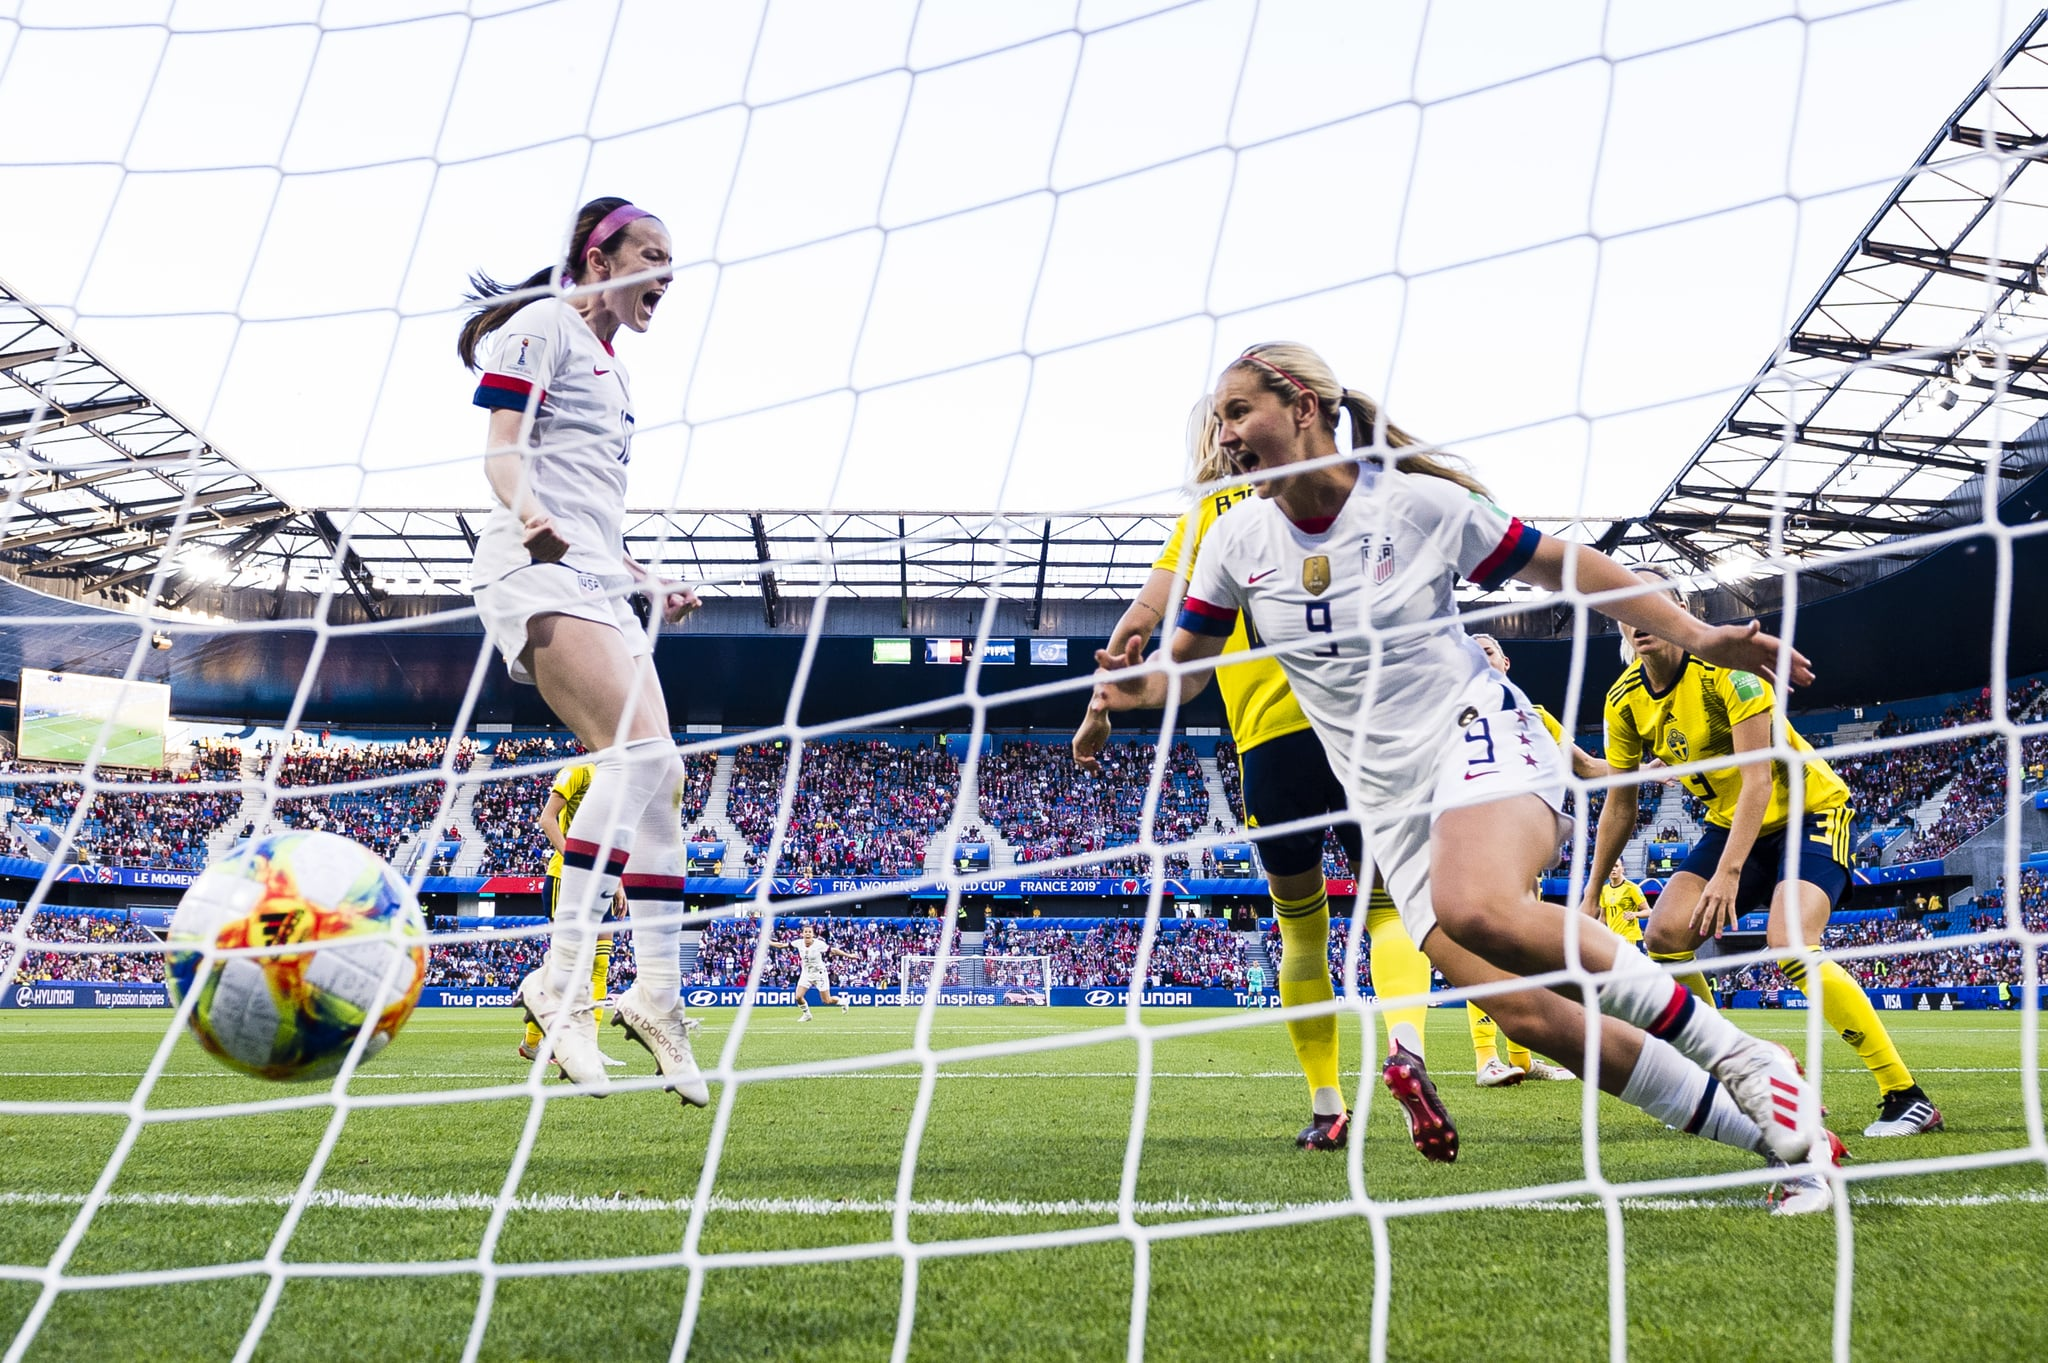 LE HAVRE, FRANCE - JUNE 20: Lindsey Horan of United States (R) celebrating the opening goal of USA during the 2019 FIFA Women's World Cup France group F match between Sweden and USA at  on June 20, 2019 in Le Havre, France. (Photo by Marcio Machado/Getty Images)